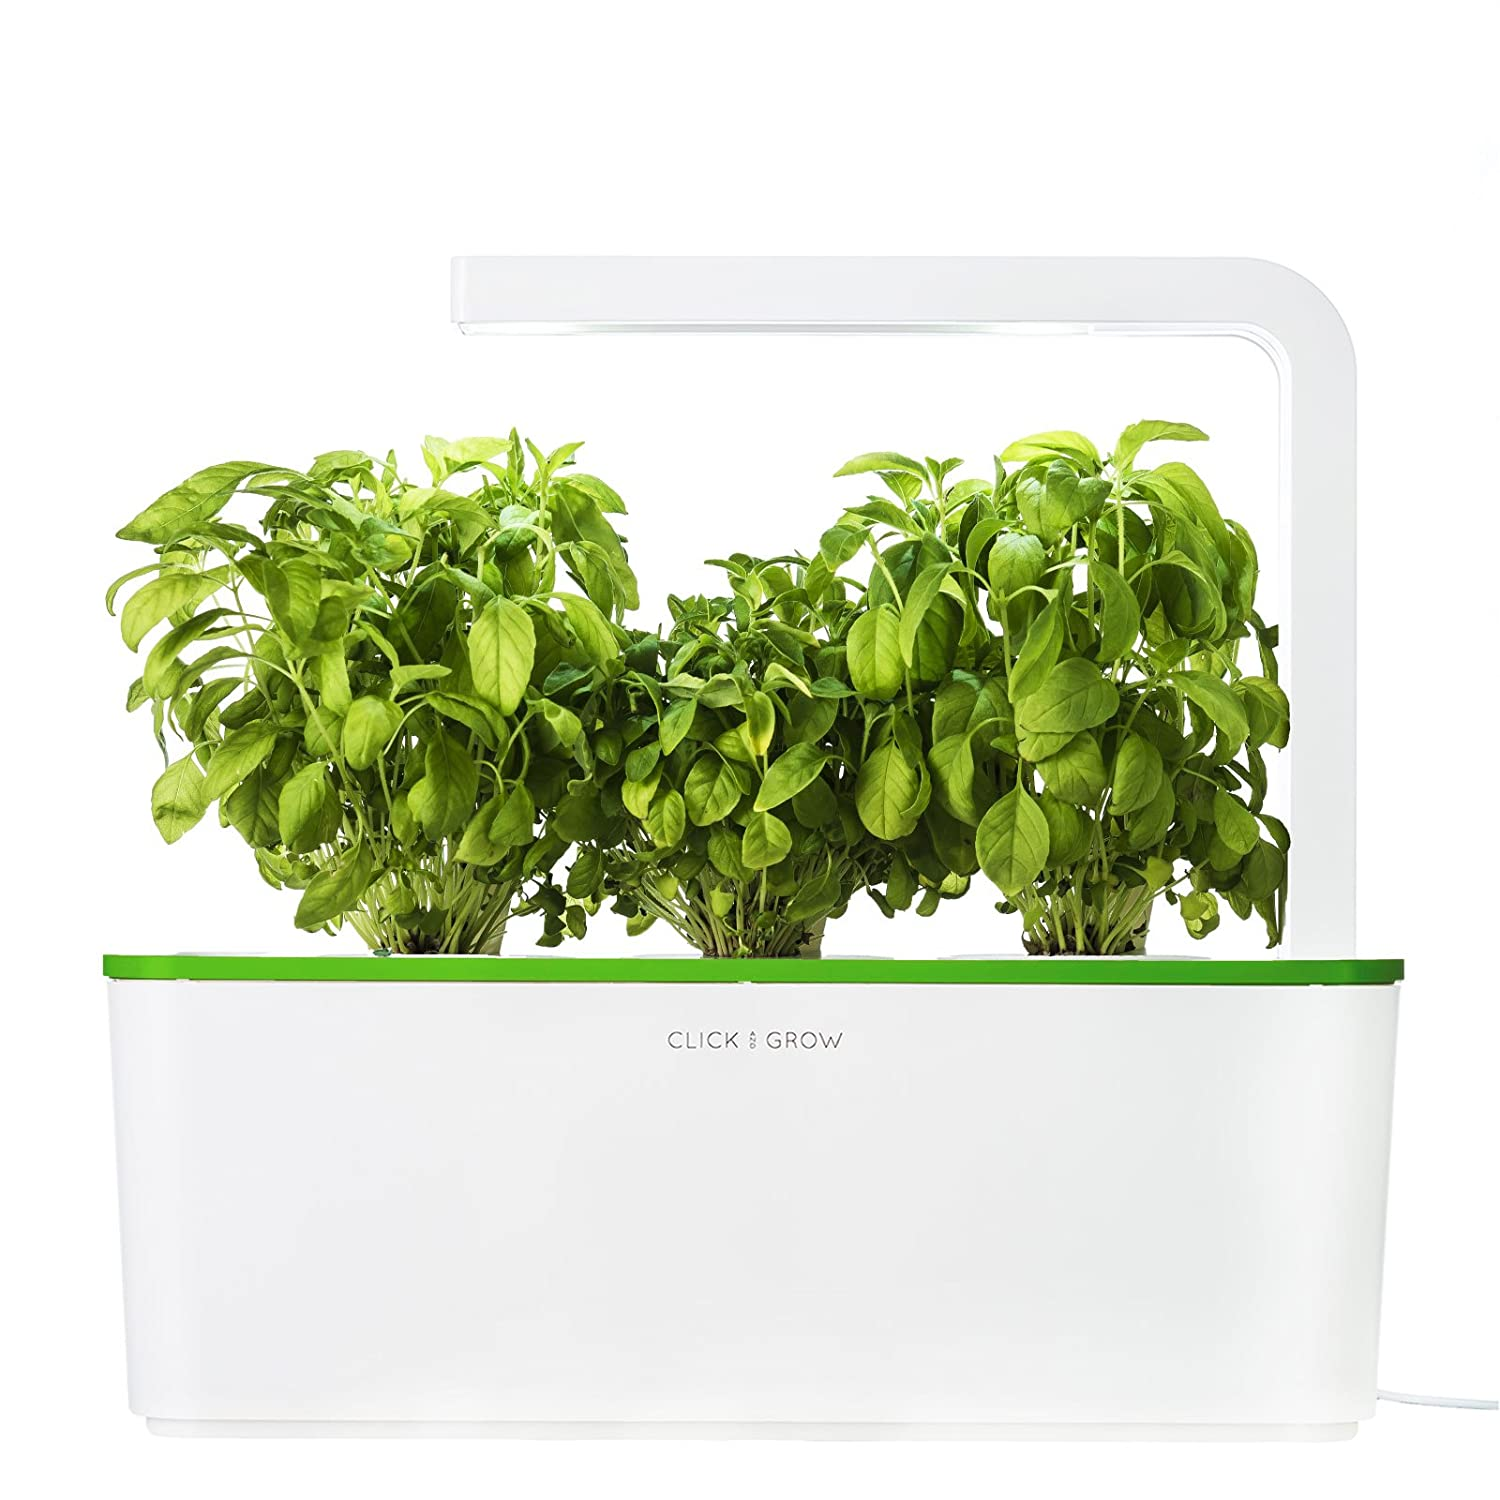 Click & Grow Indoor Smart Fresh Herb Garden Kit With 3 Basil Cartridges & Kiwi Green Lid | Self Watering Planter & Patented Nano-Tech Medium For Plant Growth